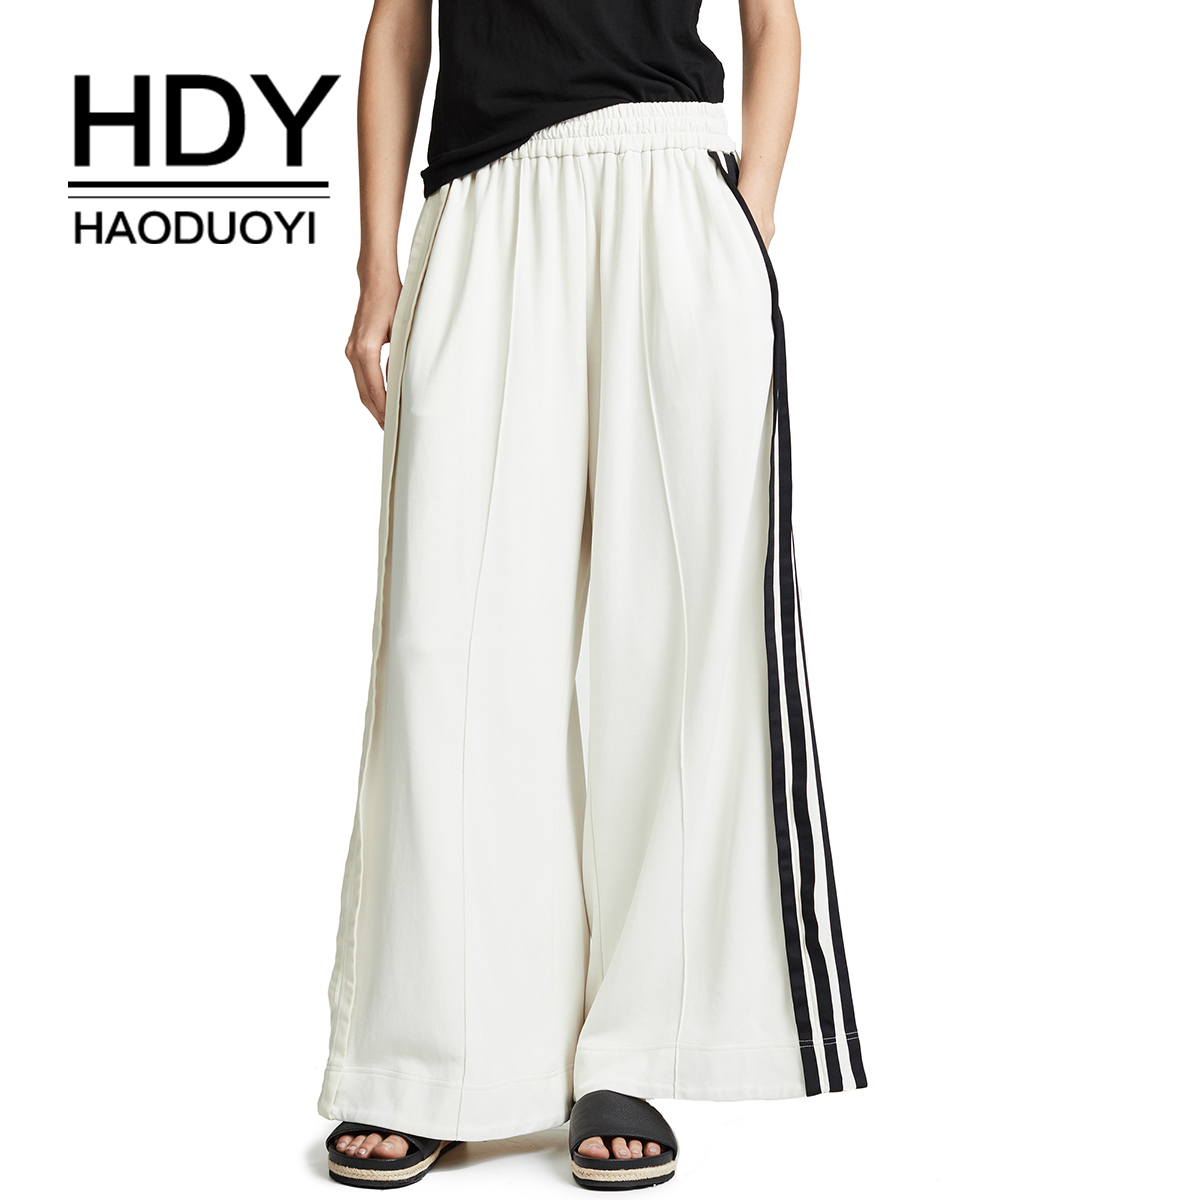 HDY Haoduoyi Euramerican Fashion New Style  Popular Simple Locomotive Wind Contrast Color Stripe Striped Sweatpants Pants White